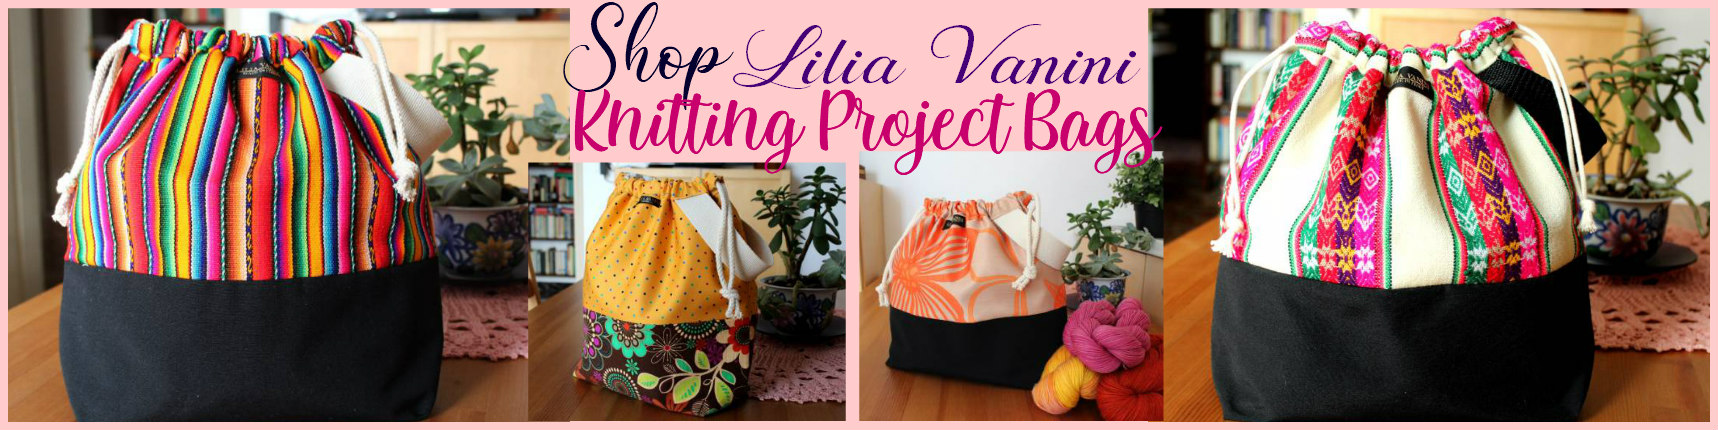 Knitting project bags andina peruvian manta wool designs bags for knitting projects by Lilia Vanini Liliacraftparty